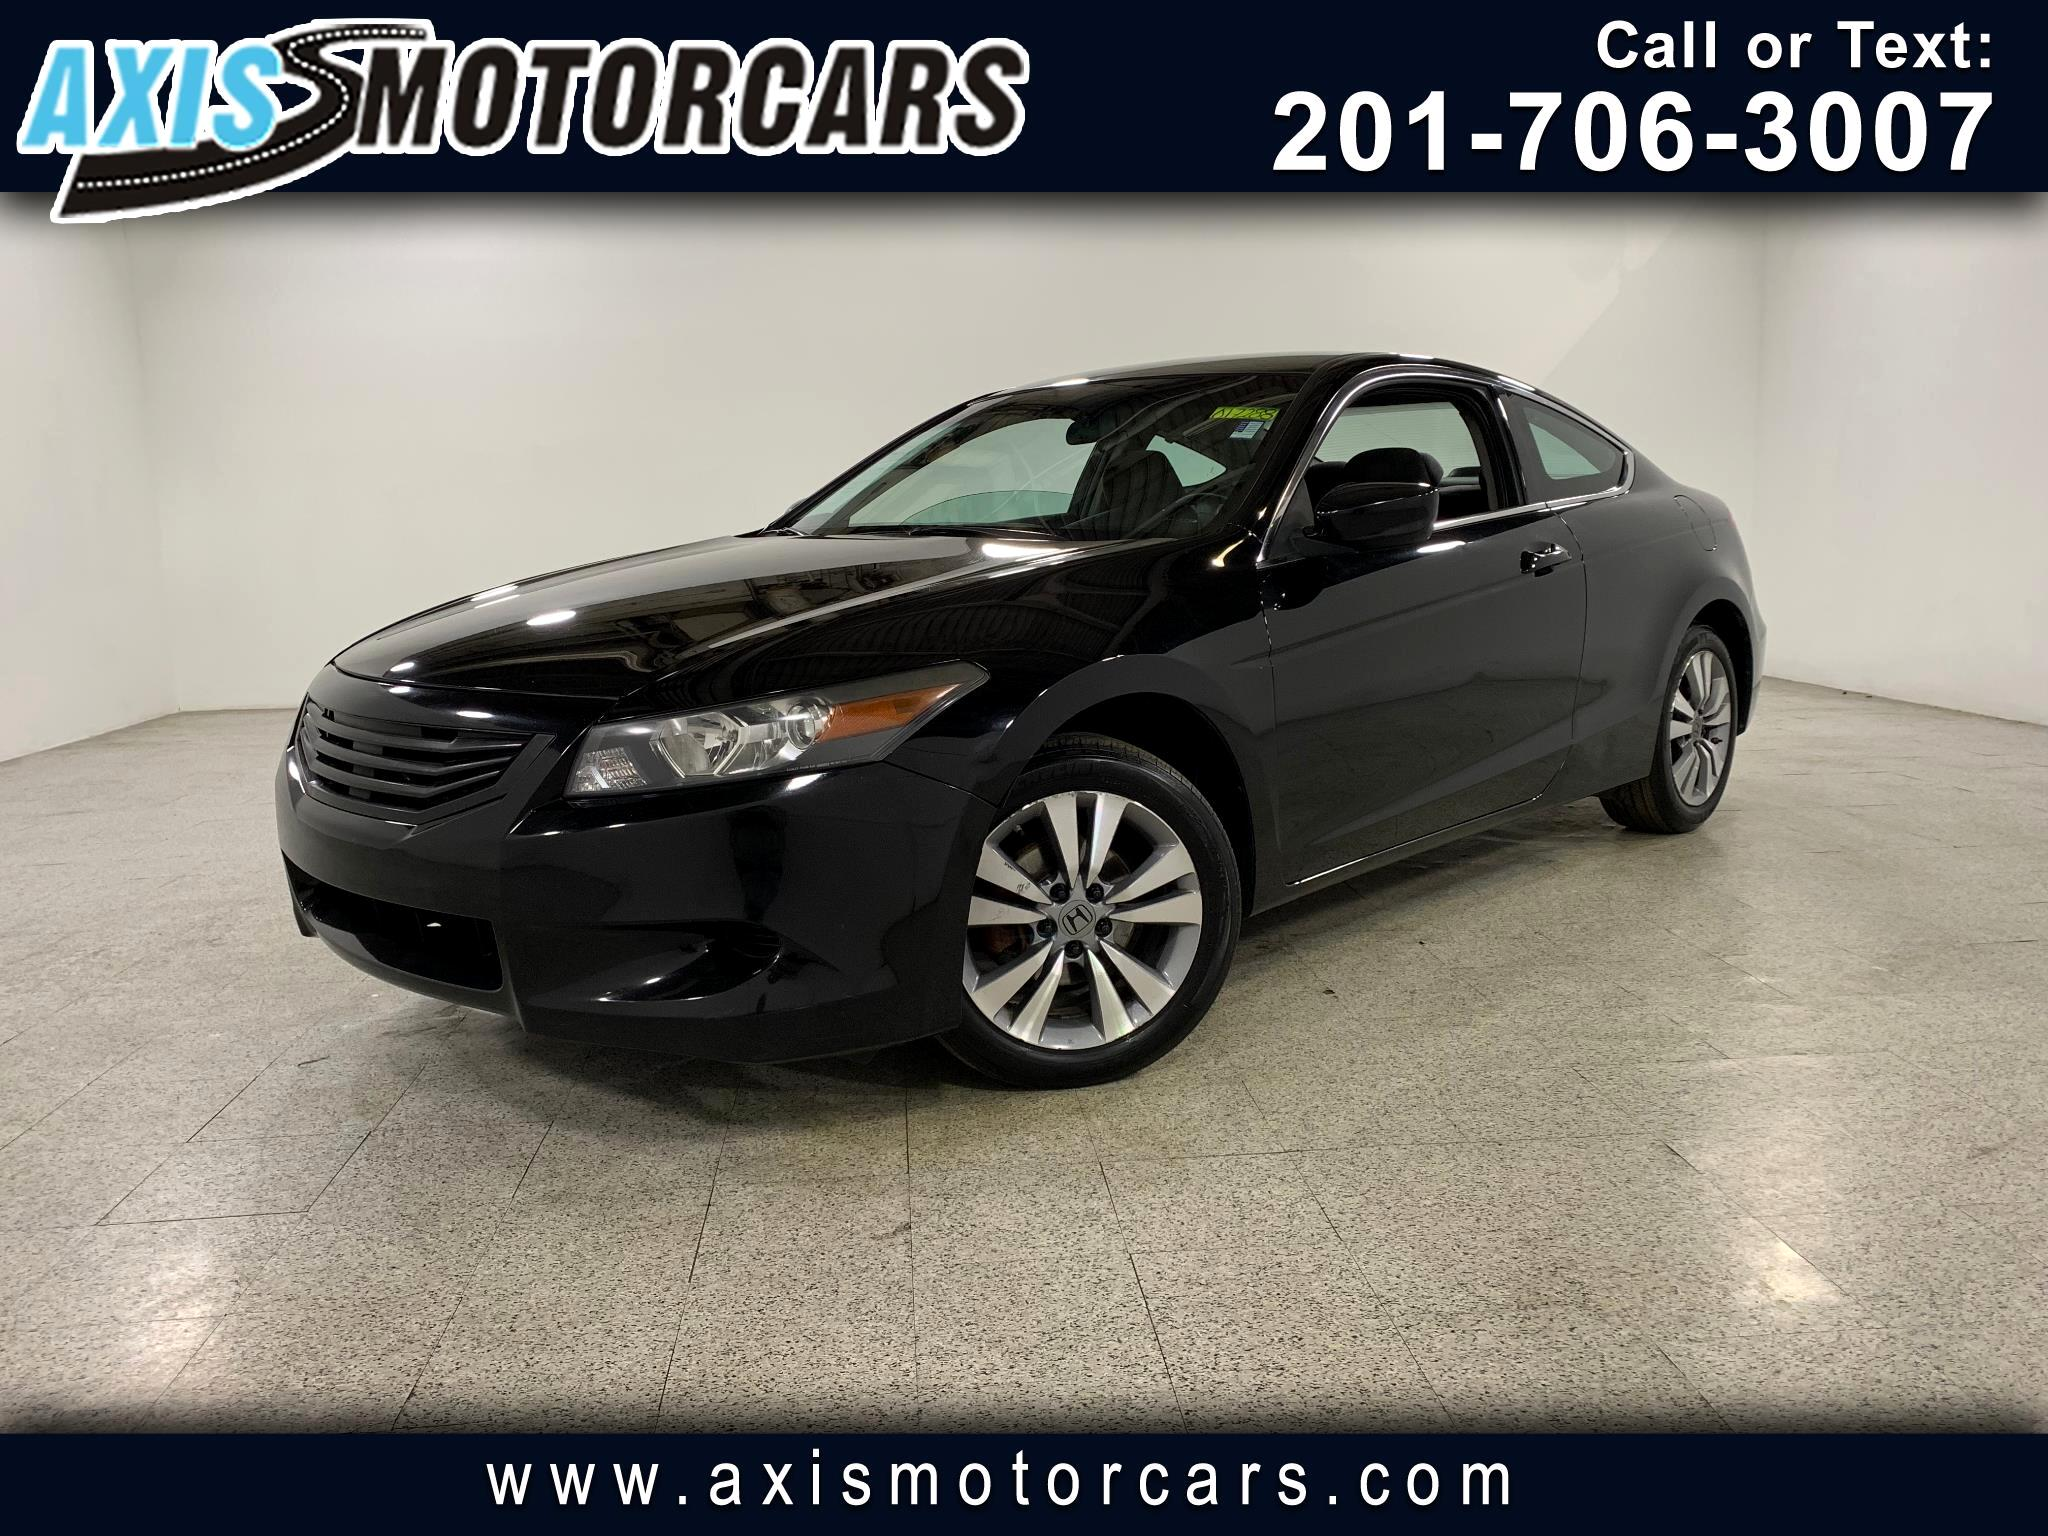 2010 Honda Accord LX-S w/Leather